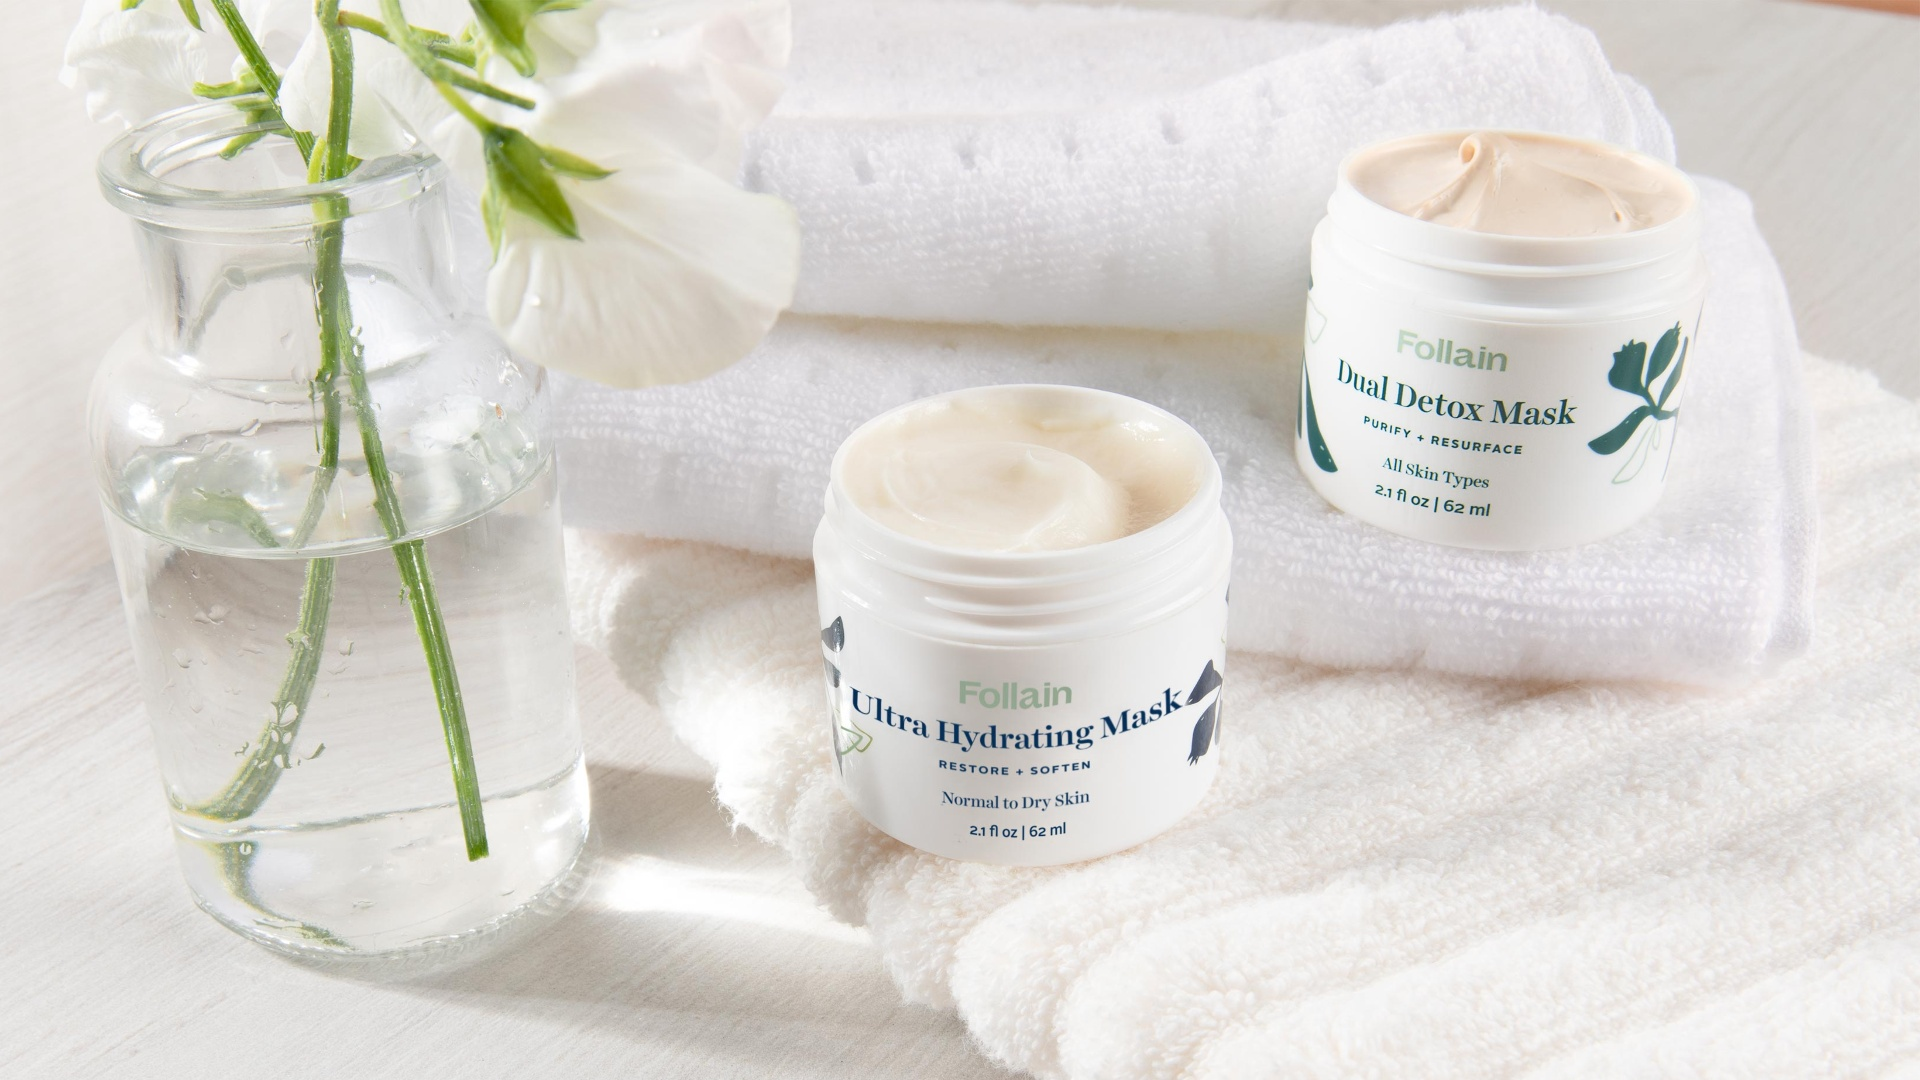 Non-toxic mask duo from Follain